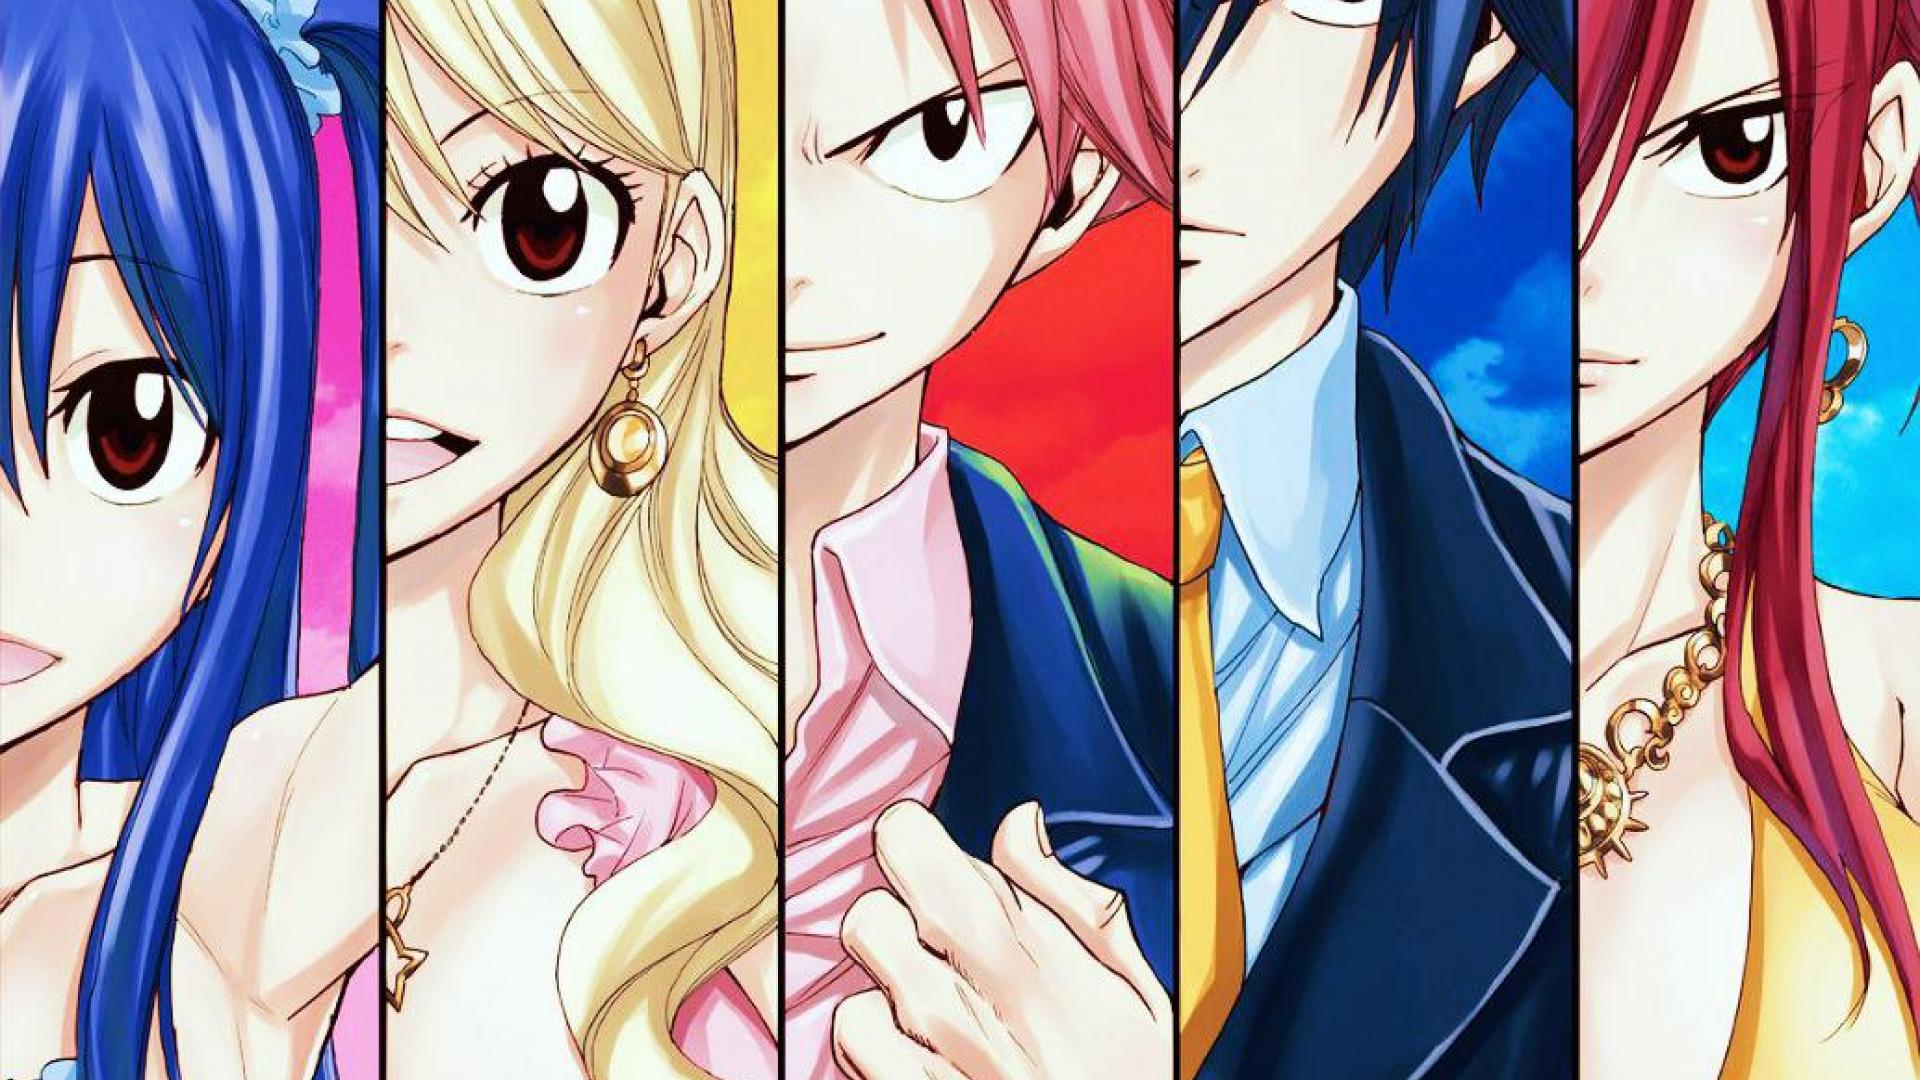 Fairy Tail wallpaper HD PixelsTalk Fairy Tail Backgrounds  Wallpaper  1920x1080